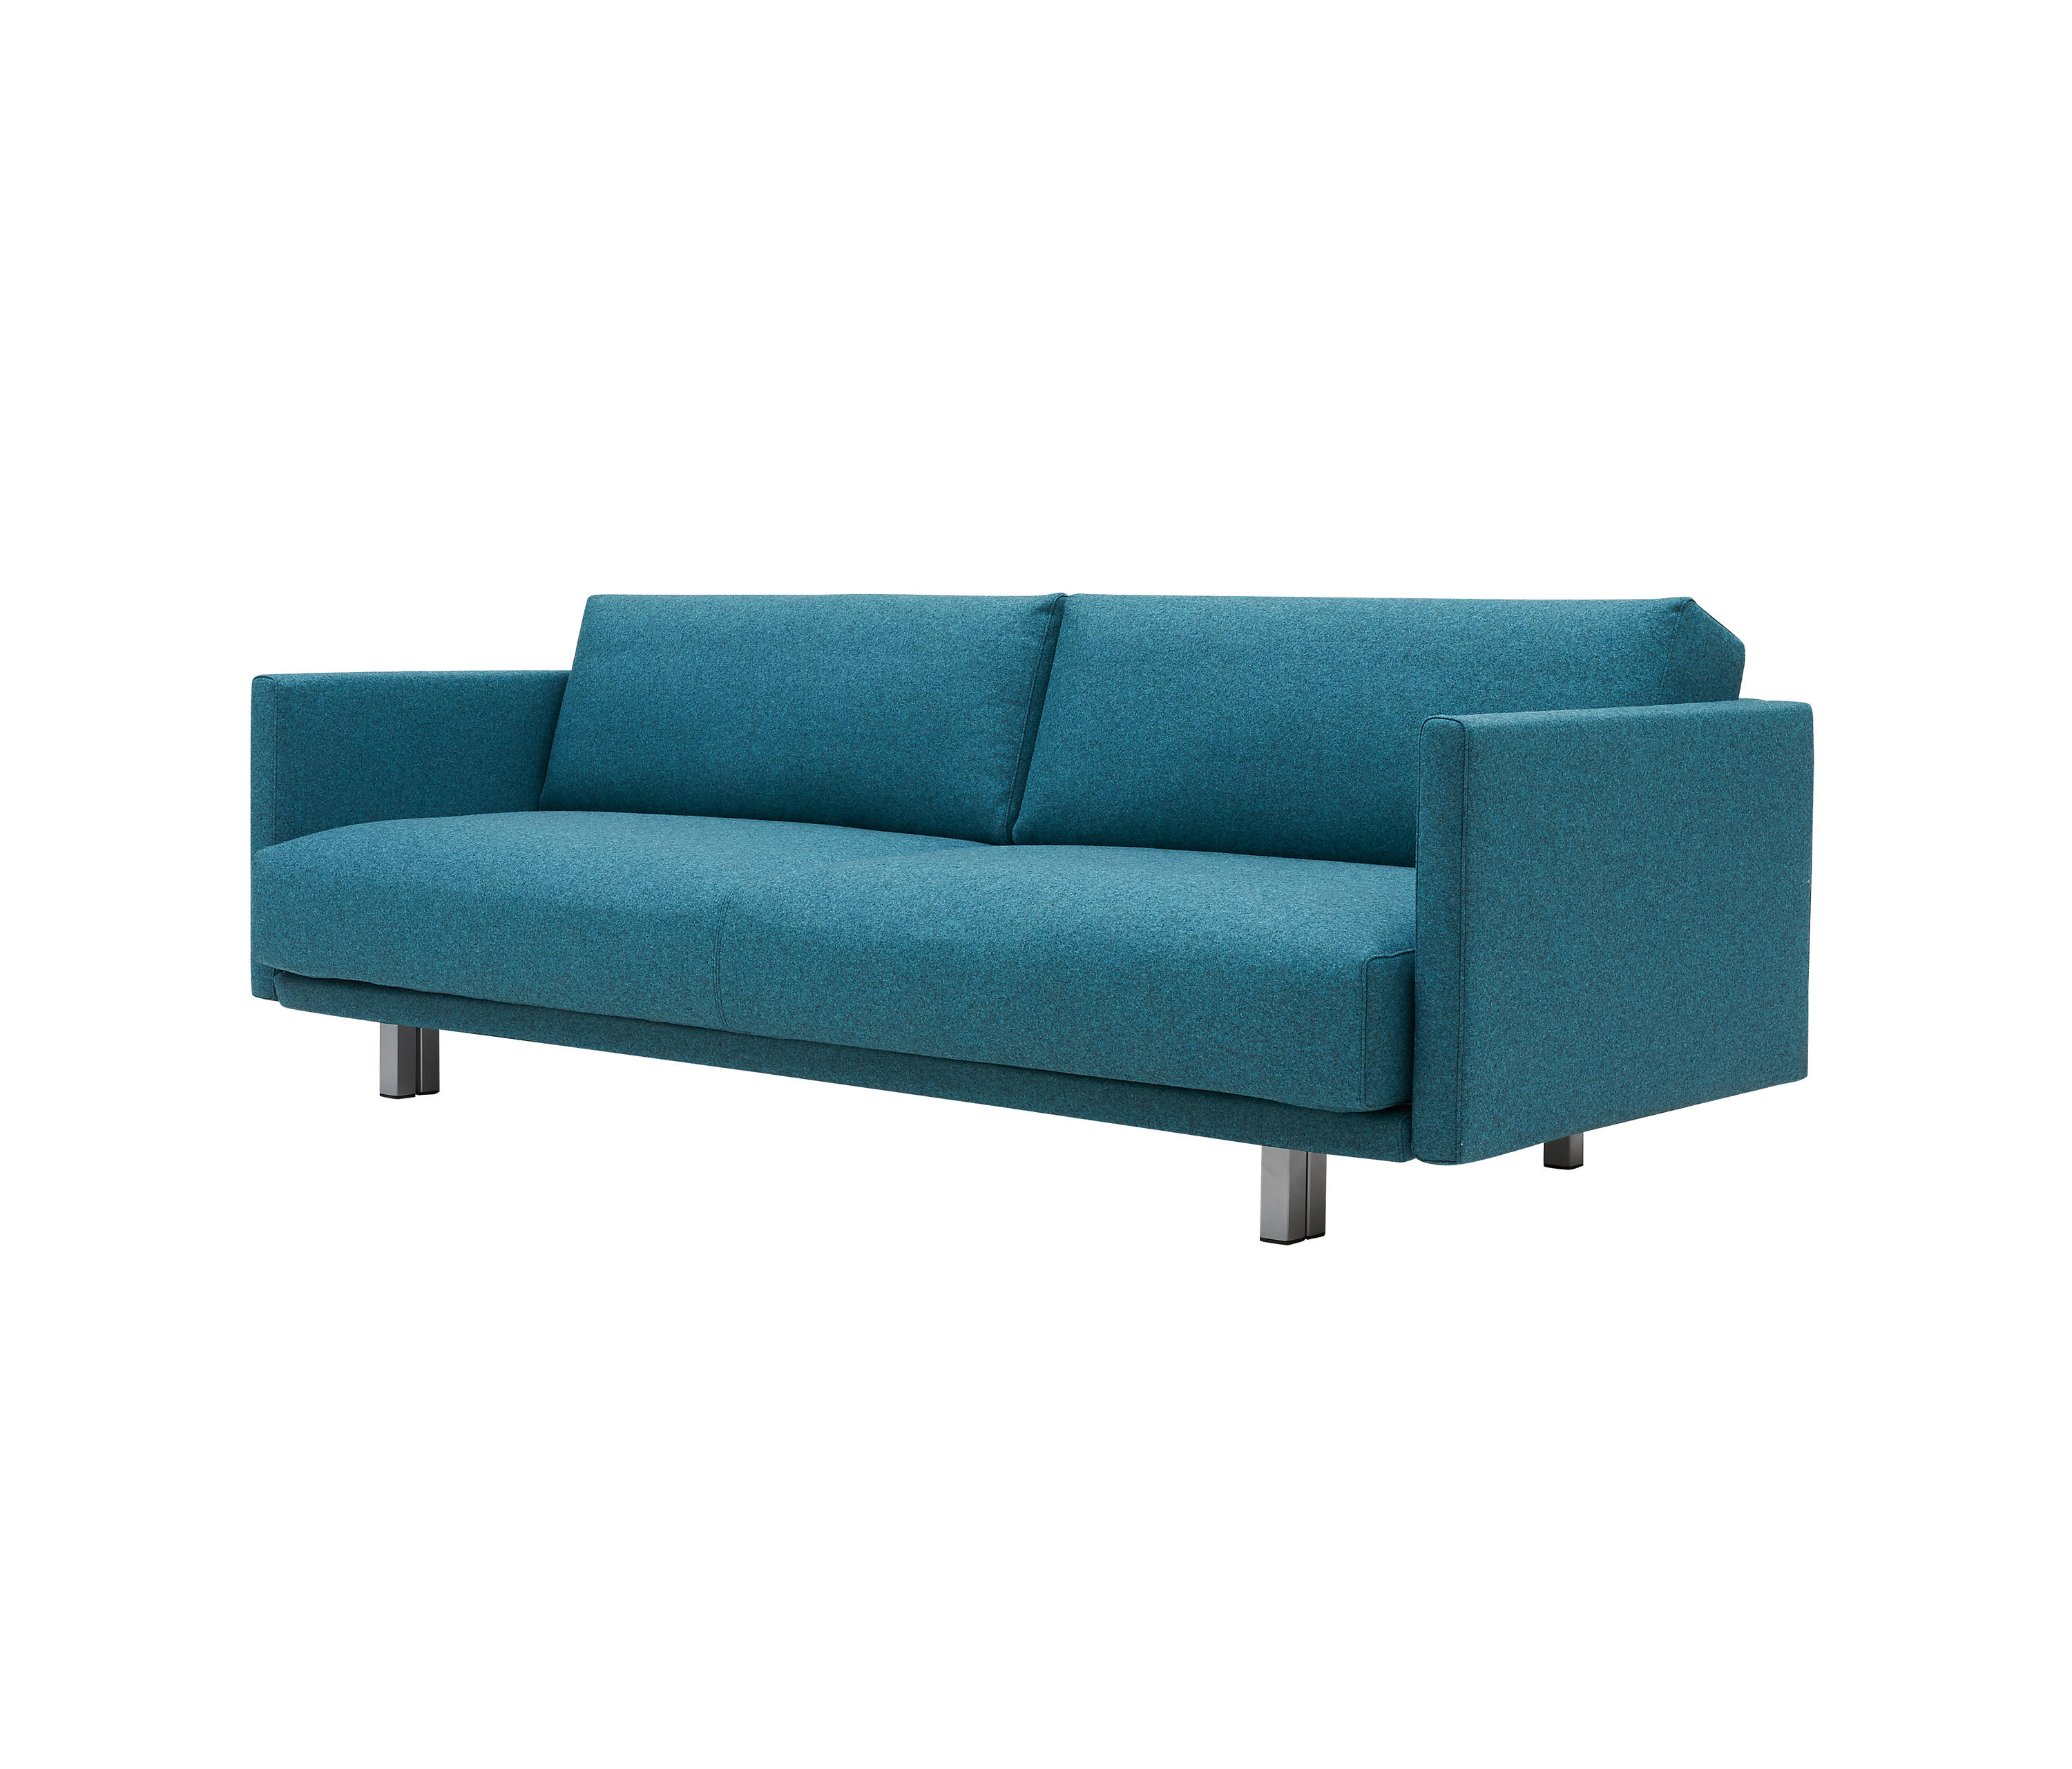 Softline Schlafsofa meghan sofa beds from softline a s architonic